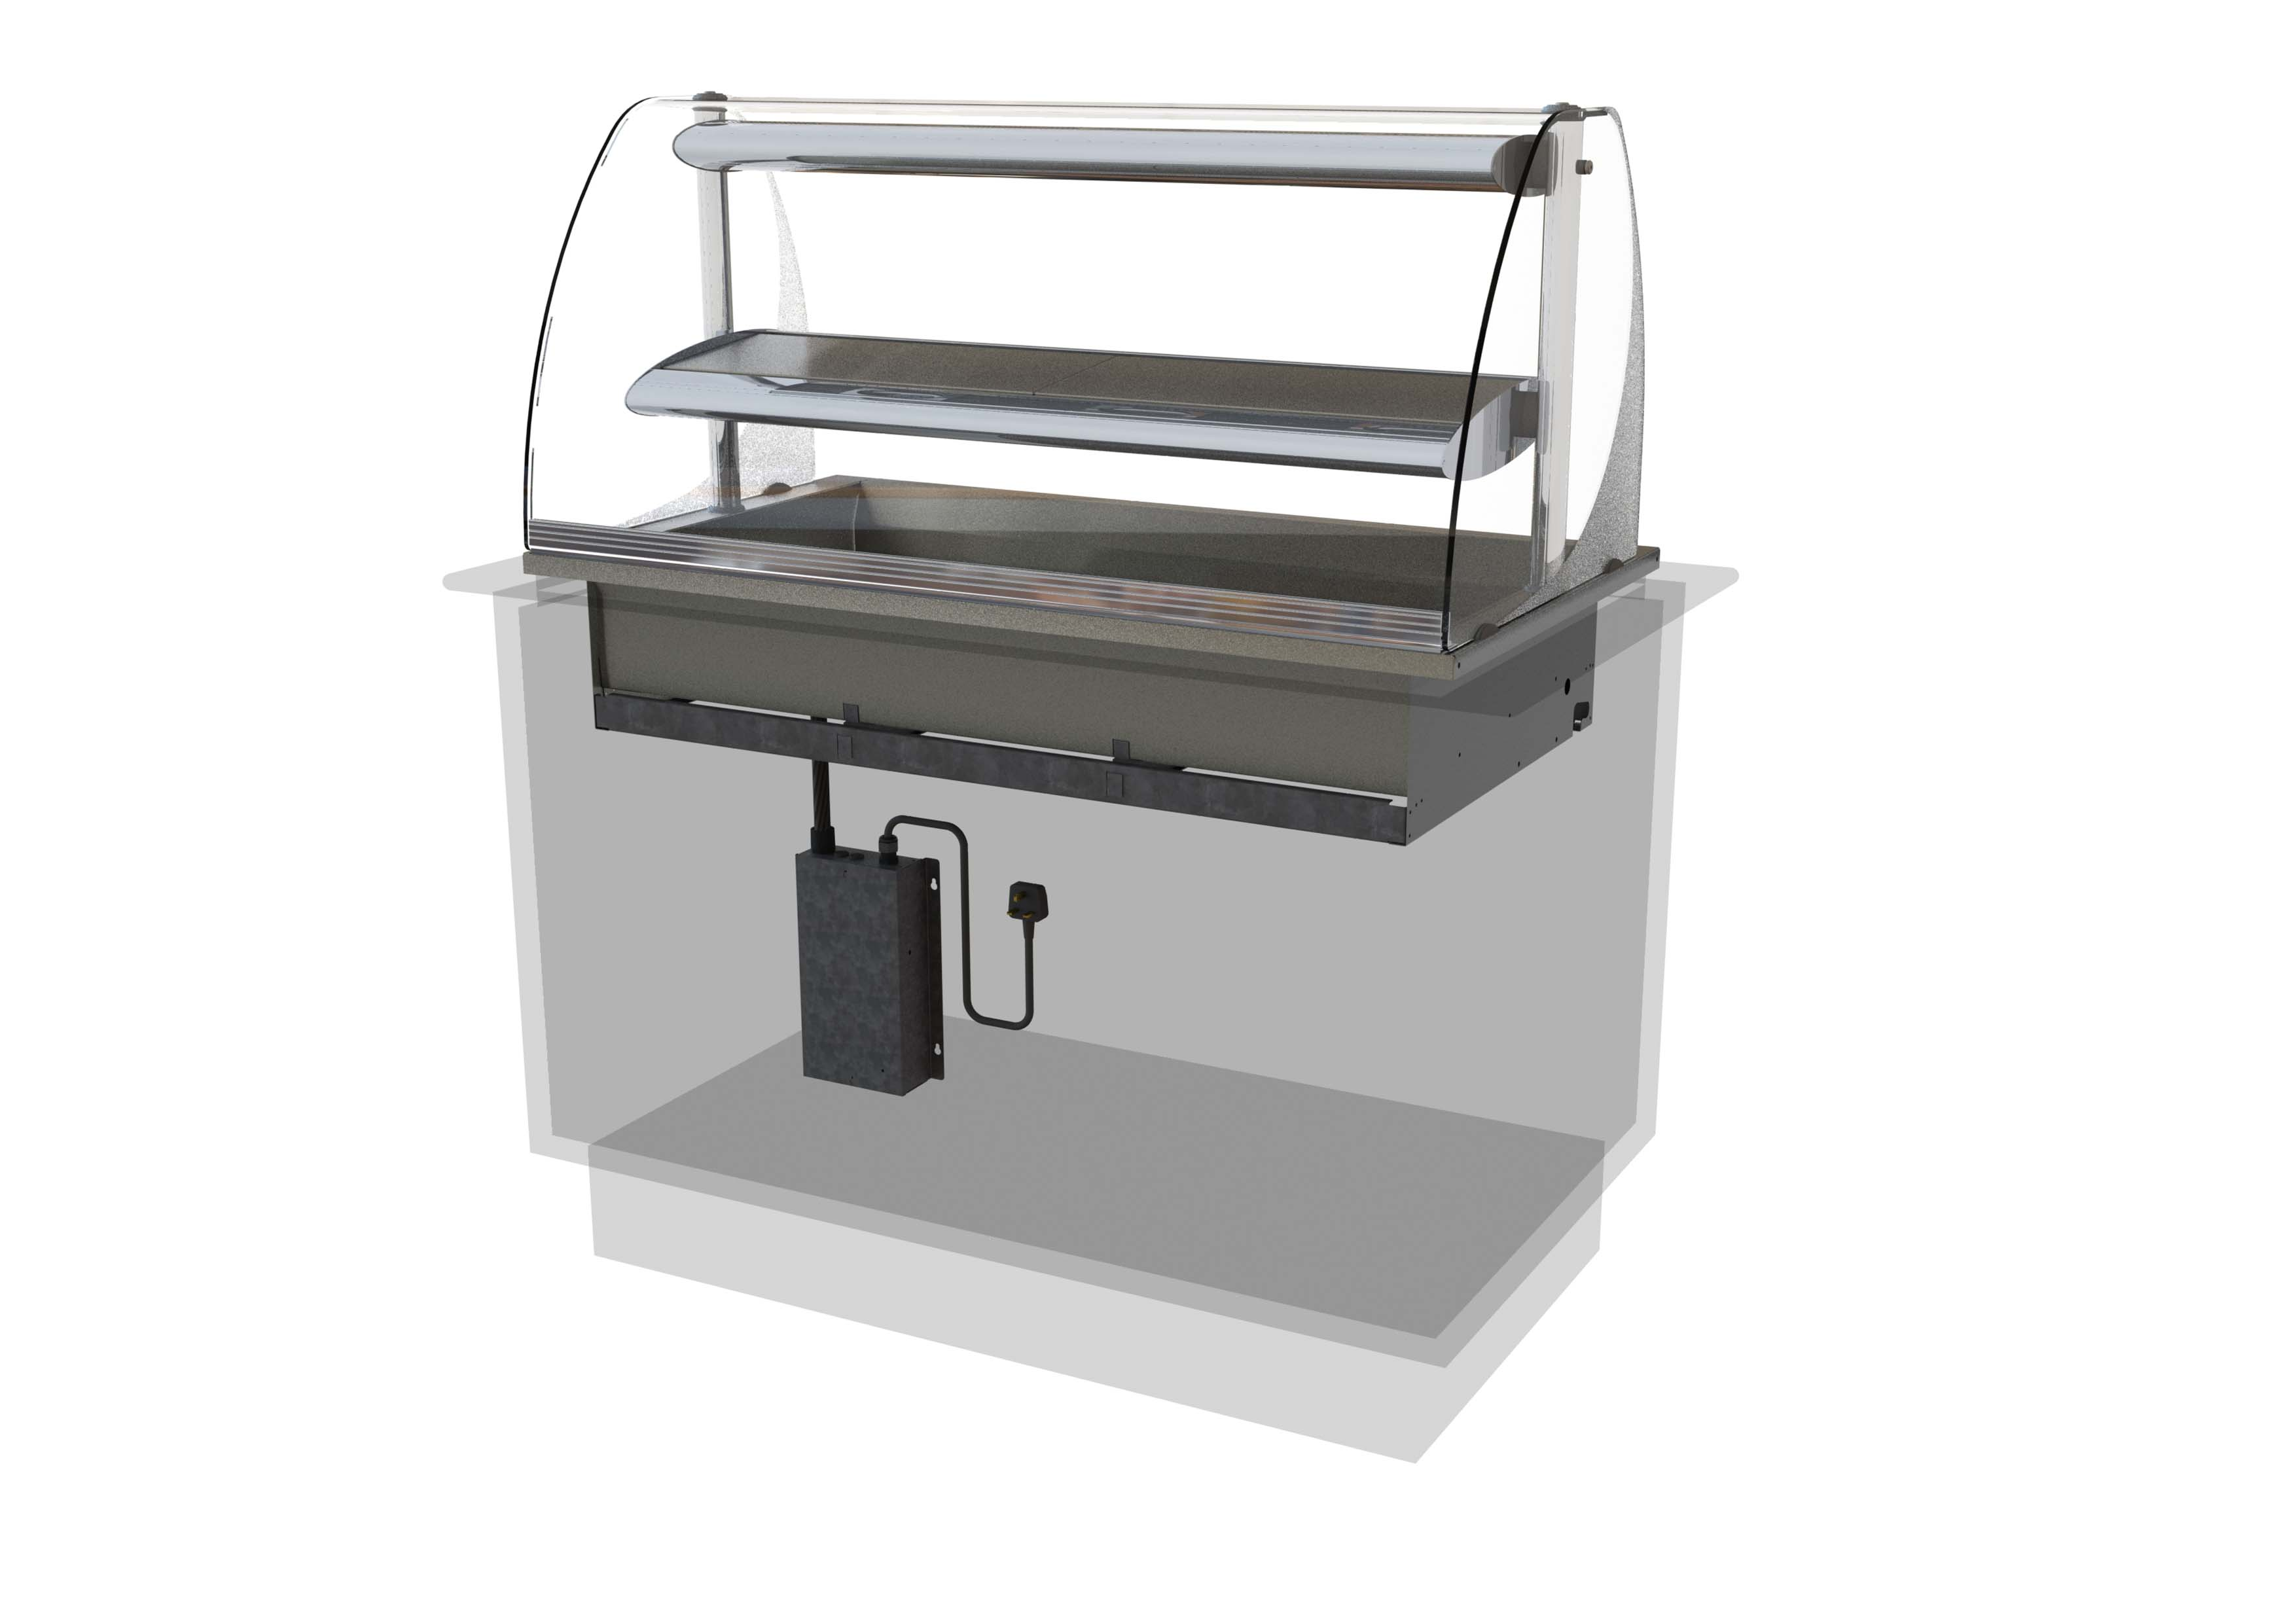 Designline Asssisted Service Heated Deli (HDL2-5)